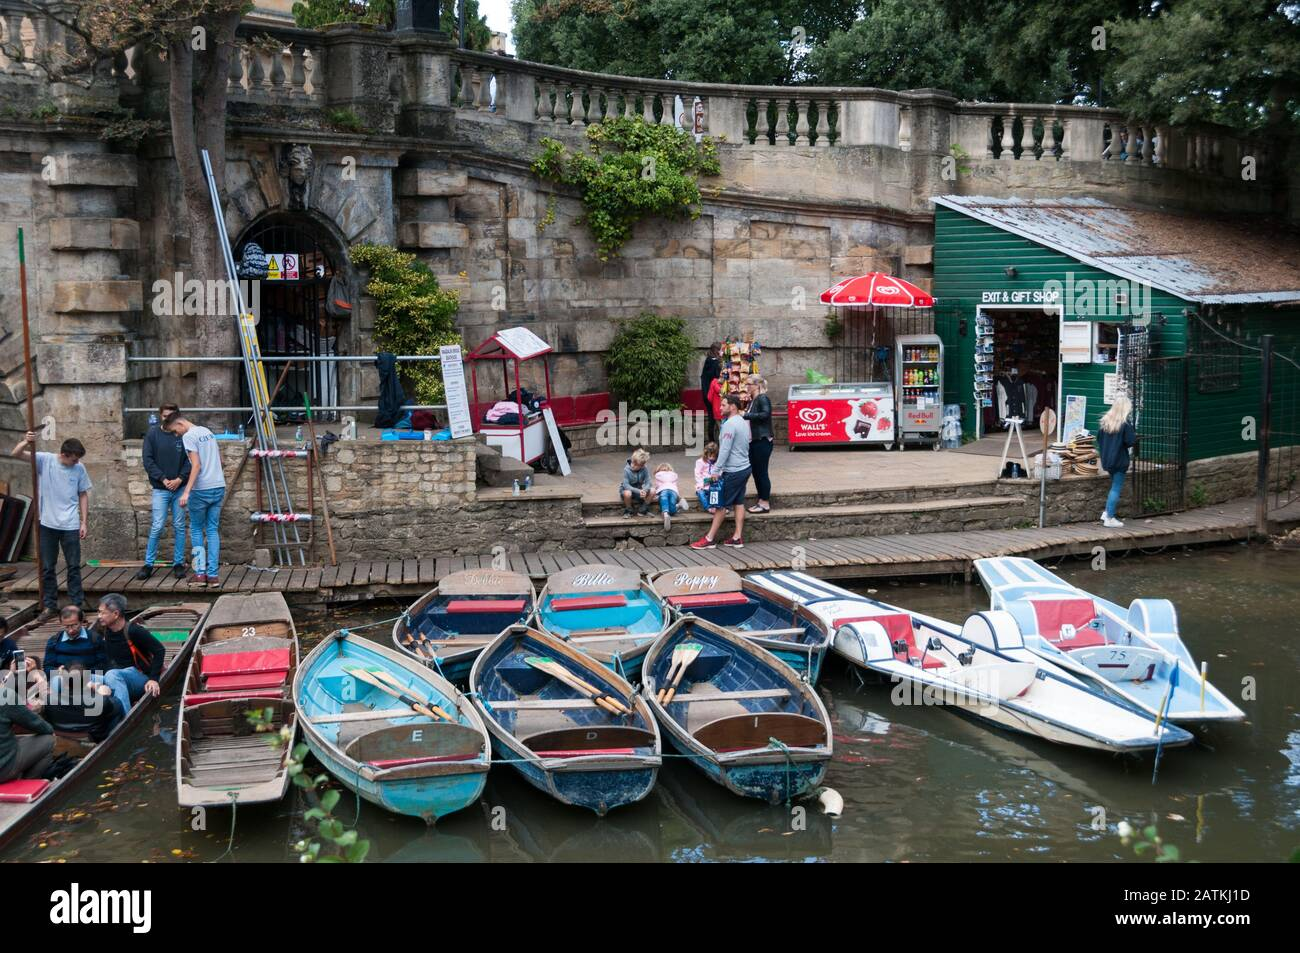 punting-on-the-river-cherwell-oxford-united-kingdom-2ATKJ1D.jpg